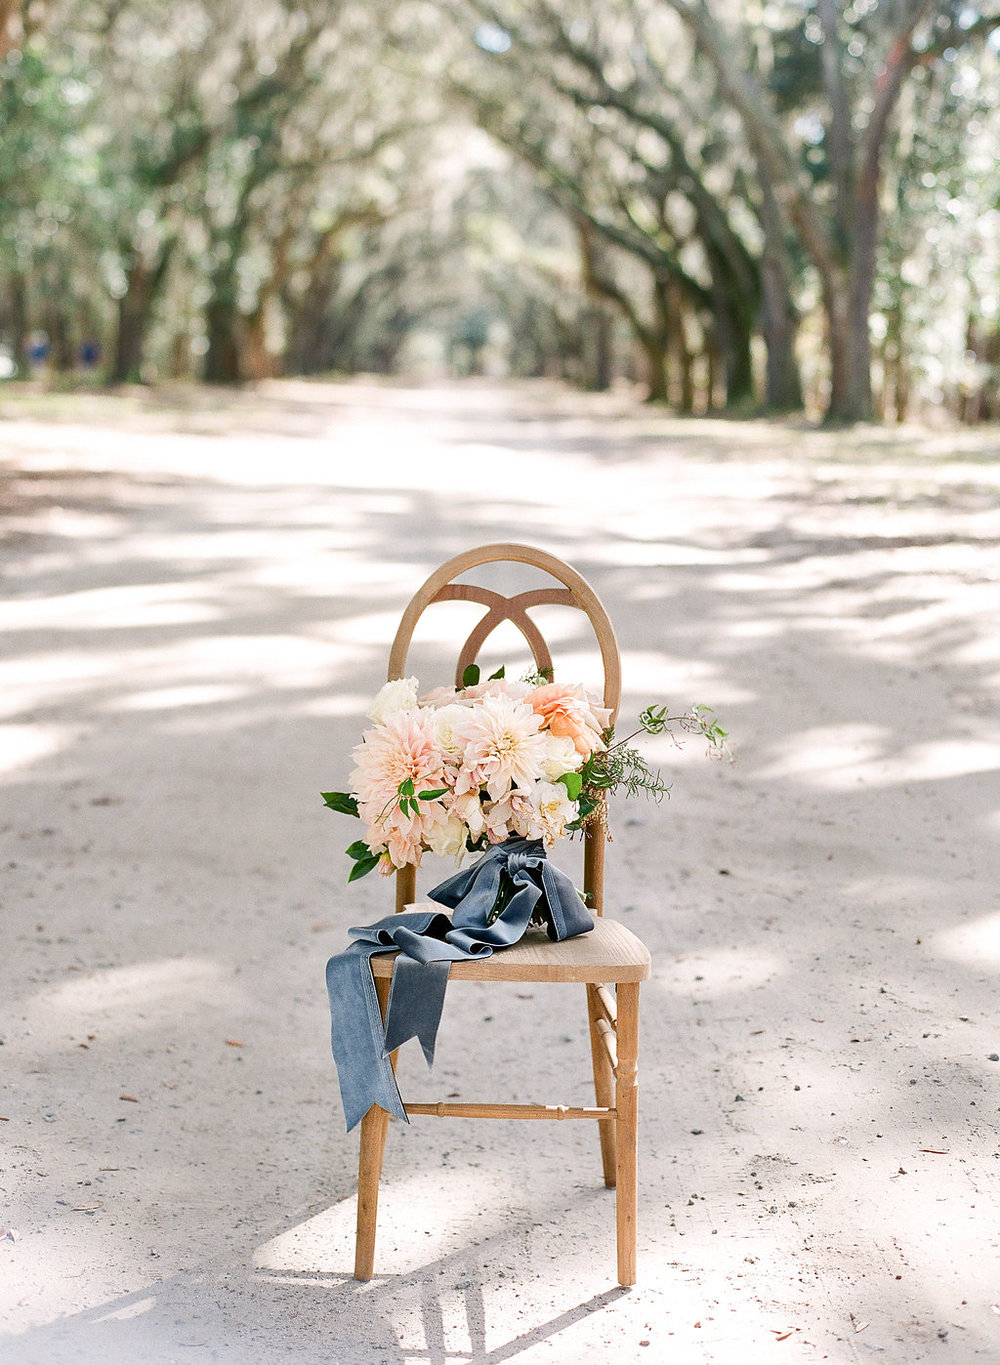 the-happy-bloom-wormsloe-wedding-savannah-wedding-ivory-and-beau-bridal-boutique-savannah-wedding-dresses-savannah-bridal-boutique-georgia-bridal-boutique-design-studio-south-sunset-wedding-blush-by-hayley-paige-candi-1550-blush-wedding-dress-6.jpg